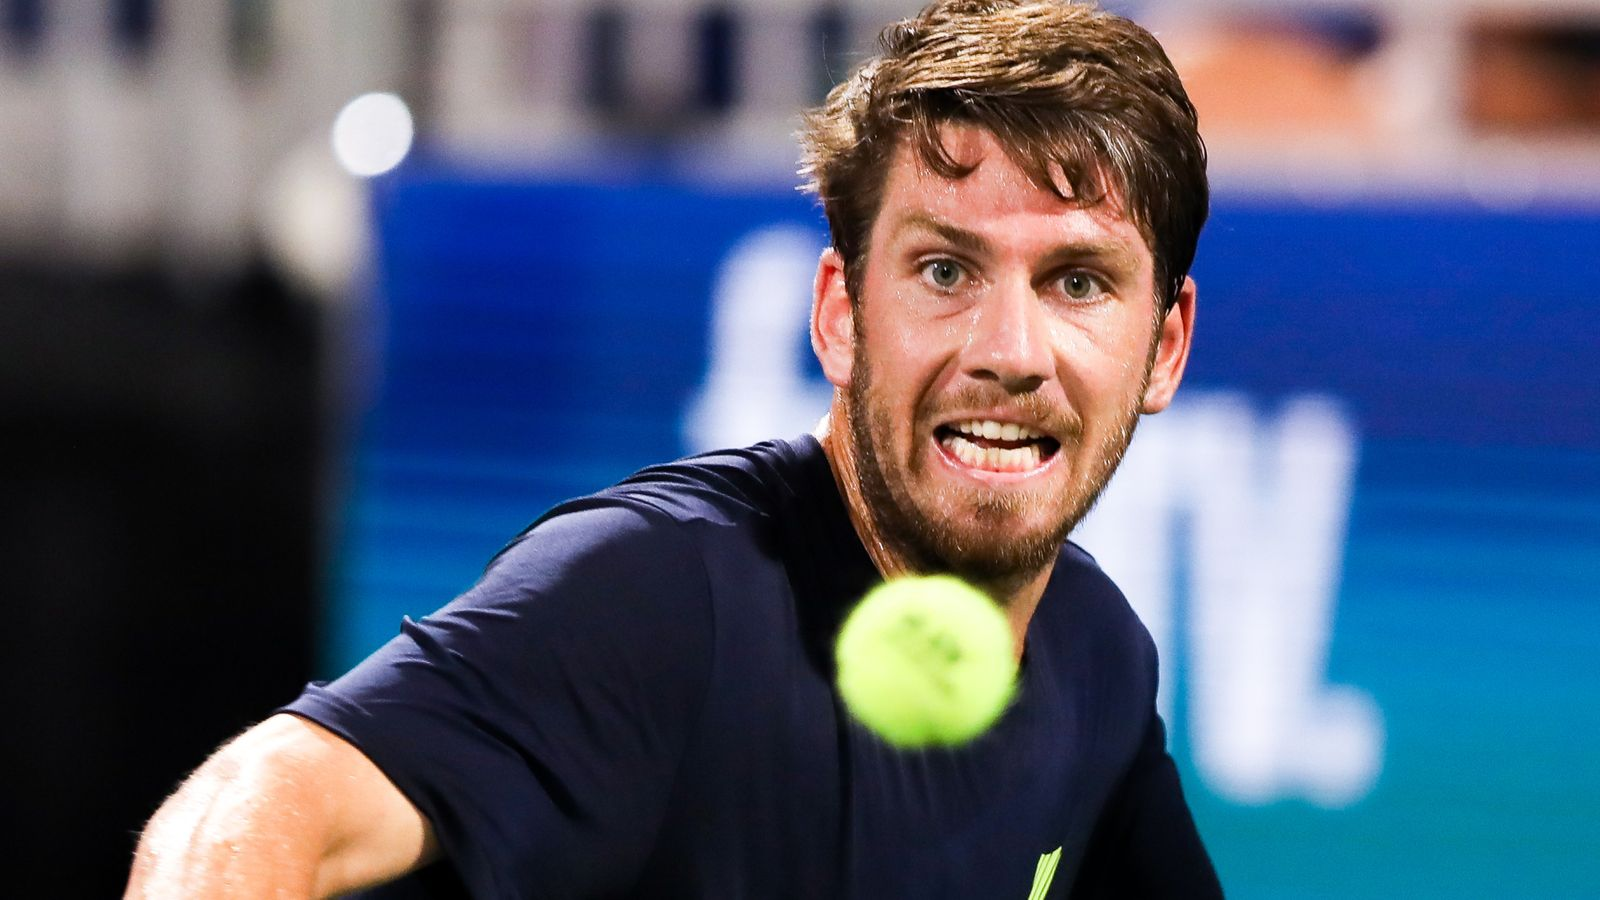 Cameron Norrie's Atlanta Open hopes ended by Emil Ruusuvuori during straight-sets quarter-final loss